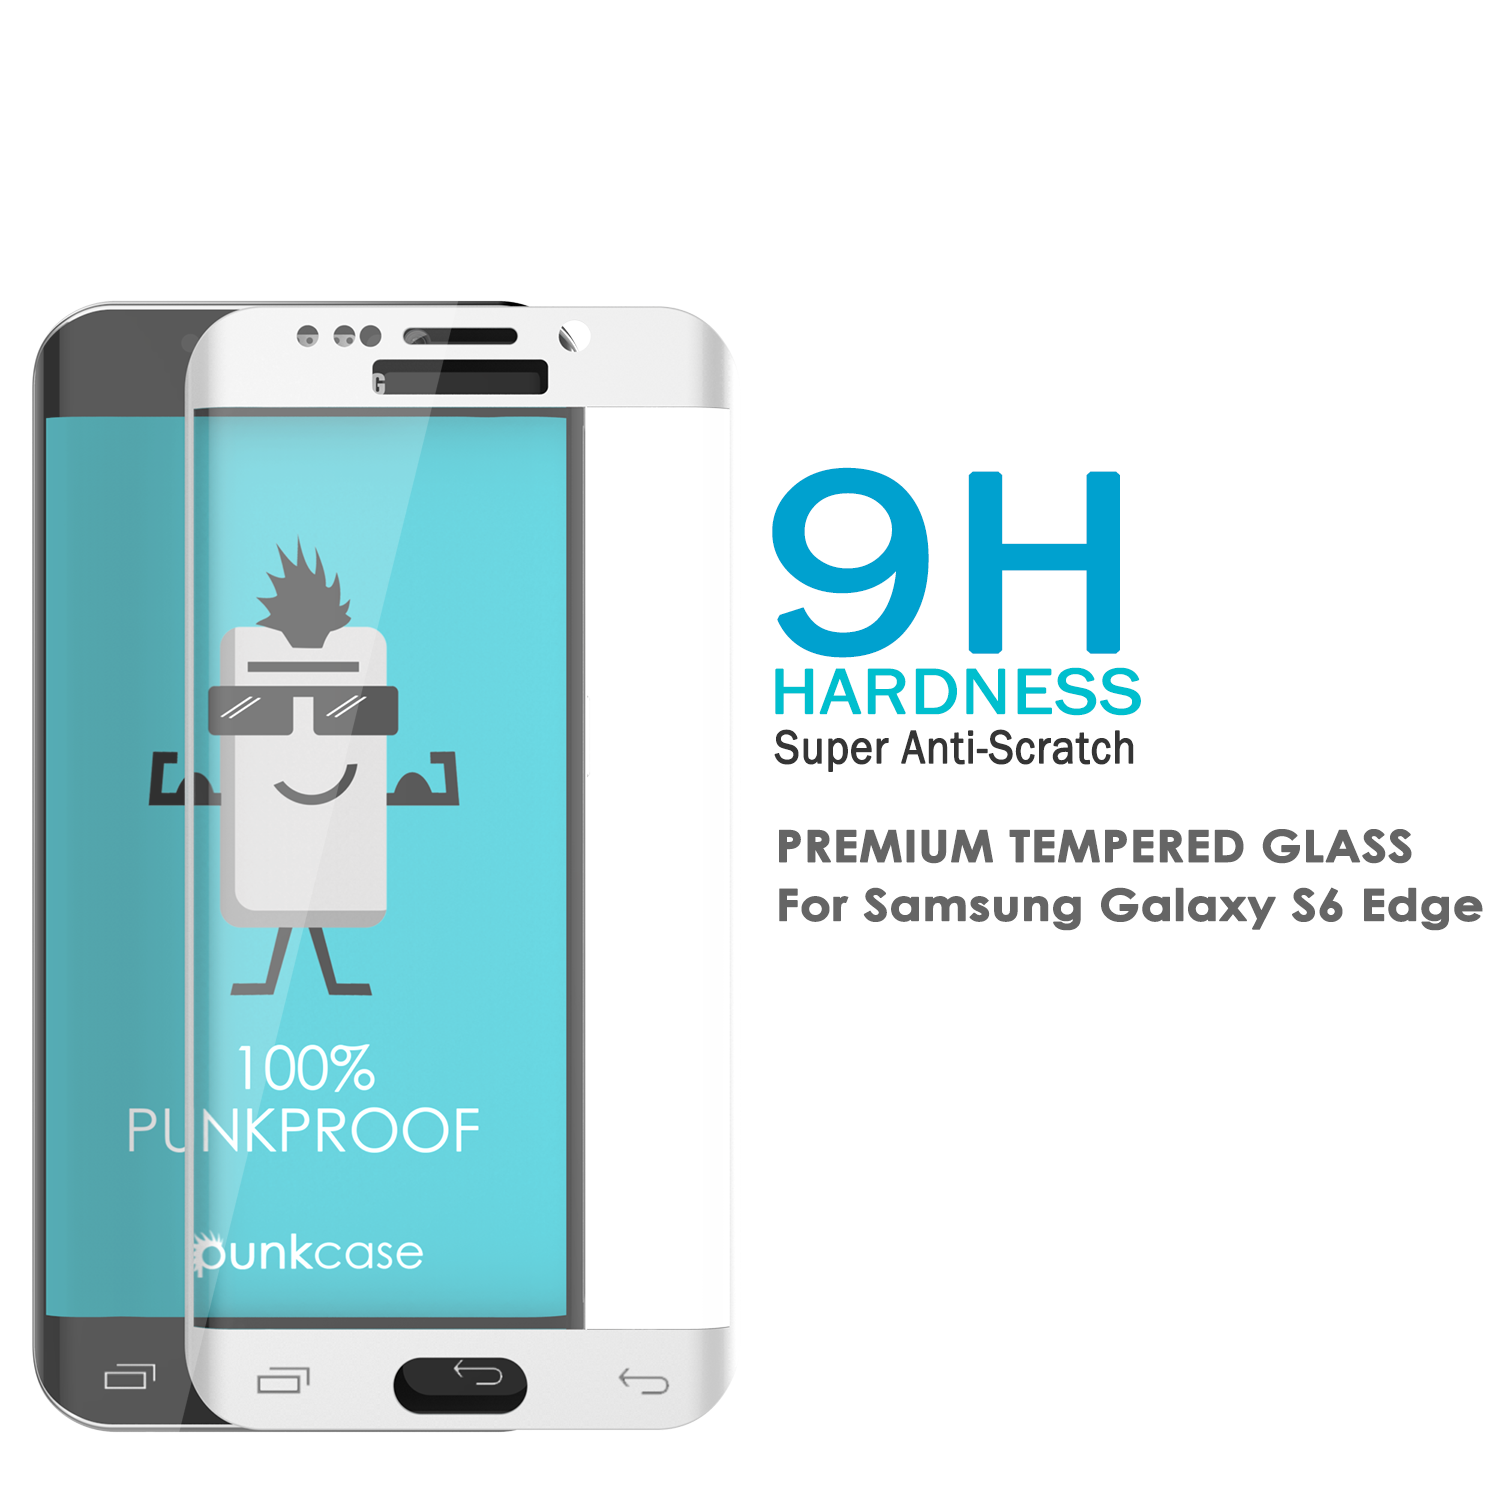 Galaxy S6 Edge White Punkcase Glass SHIELD Tempered Glass Screen Protector 0.33mm Thick 9H Glass